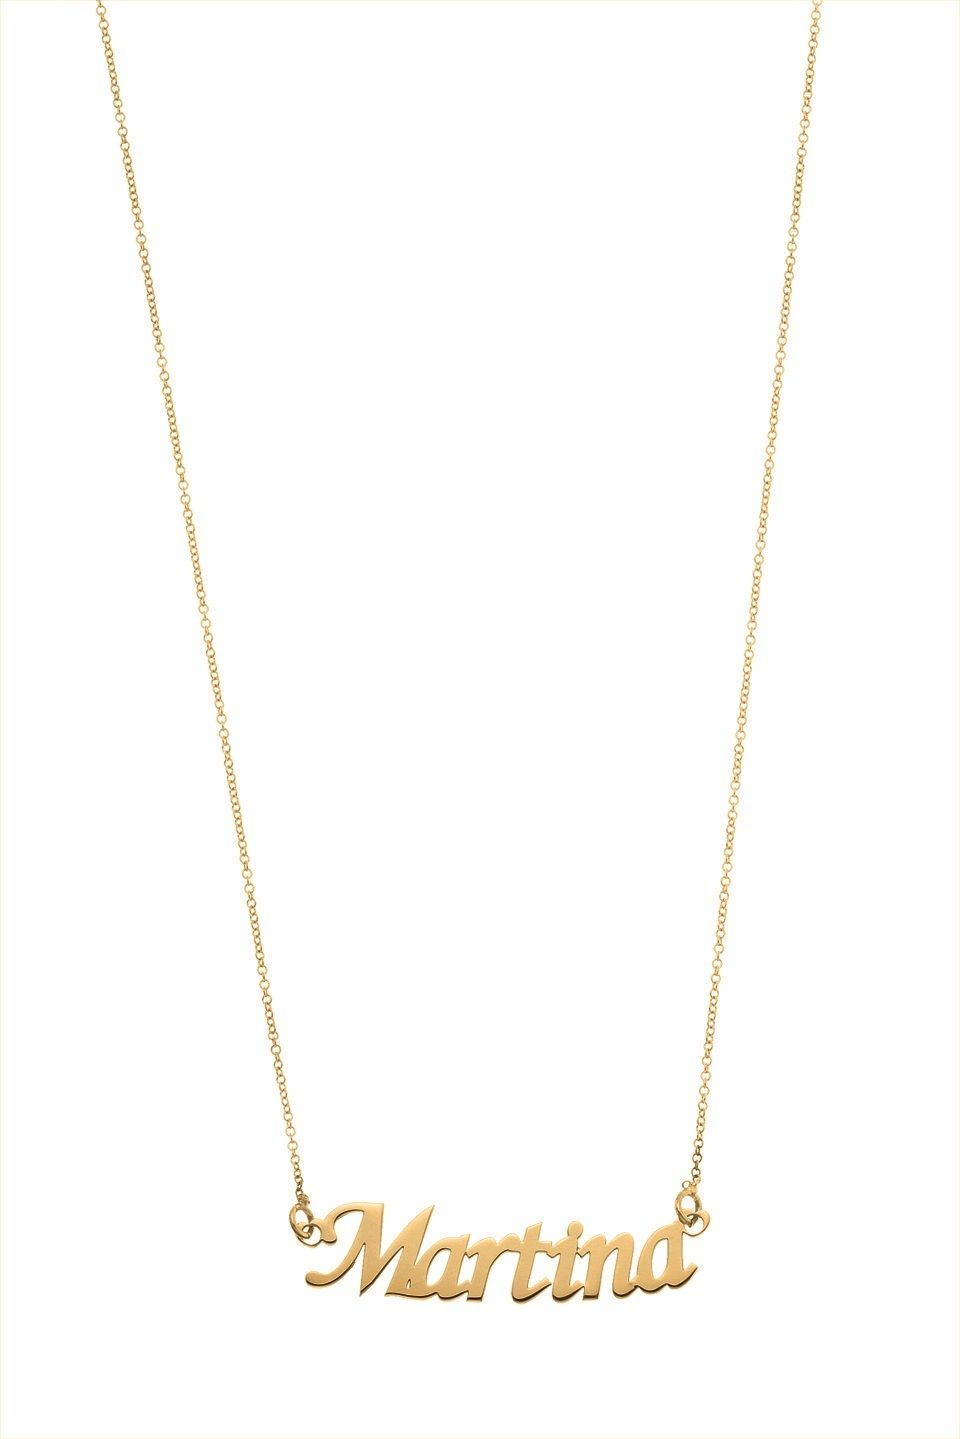 COLLANA NOME DONNA ref 25nb01 MY CHARM ORO 18 kt INCISIONE NOME A LASER